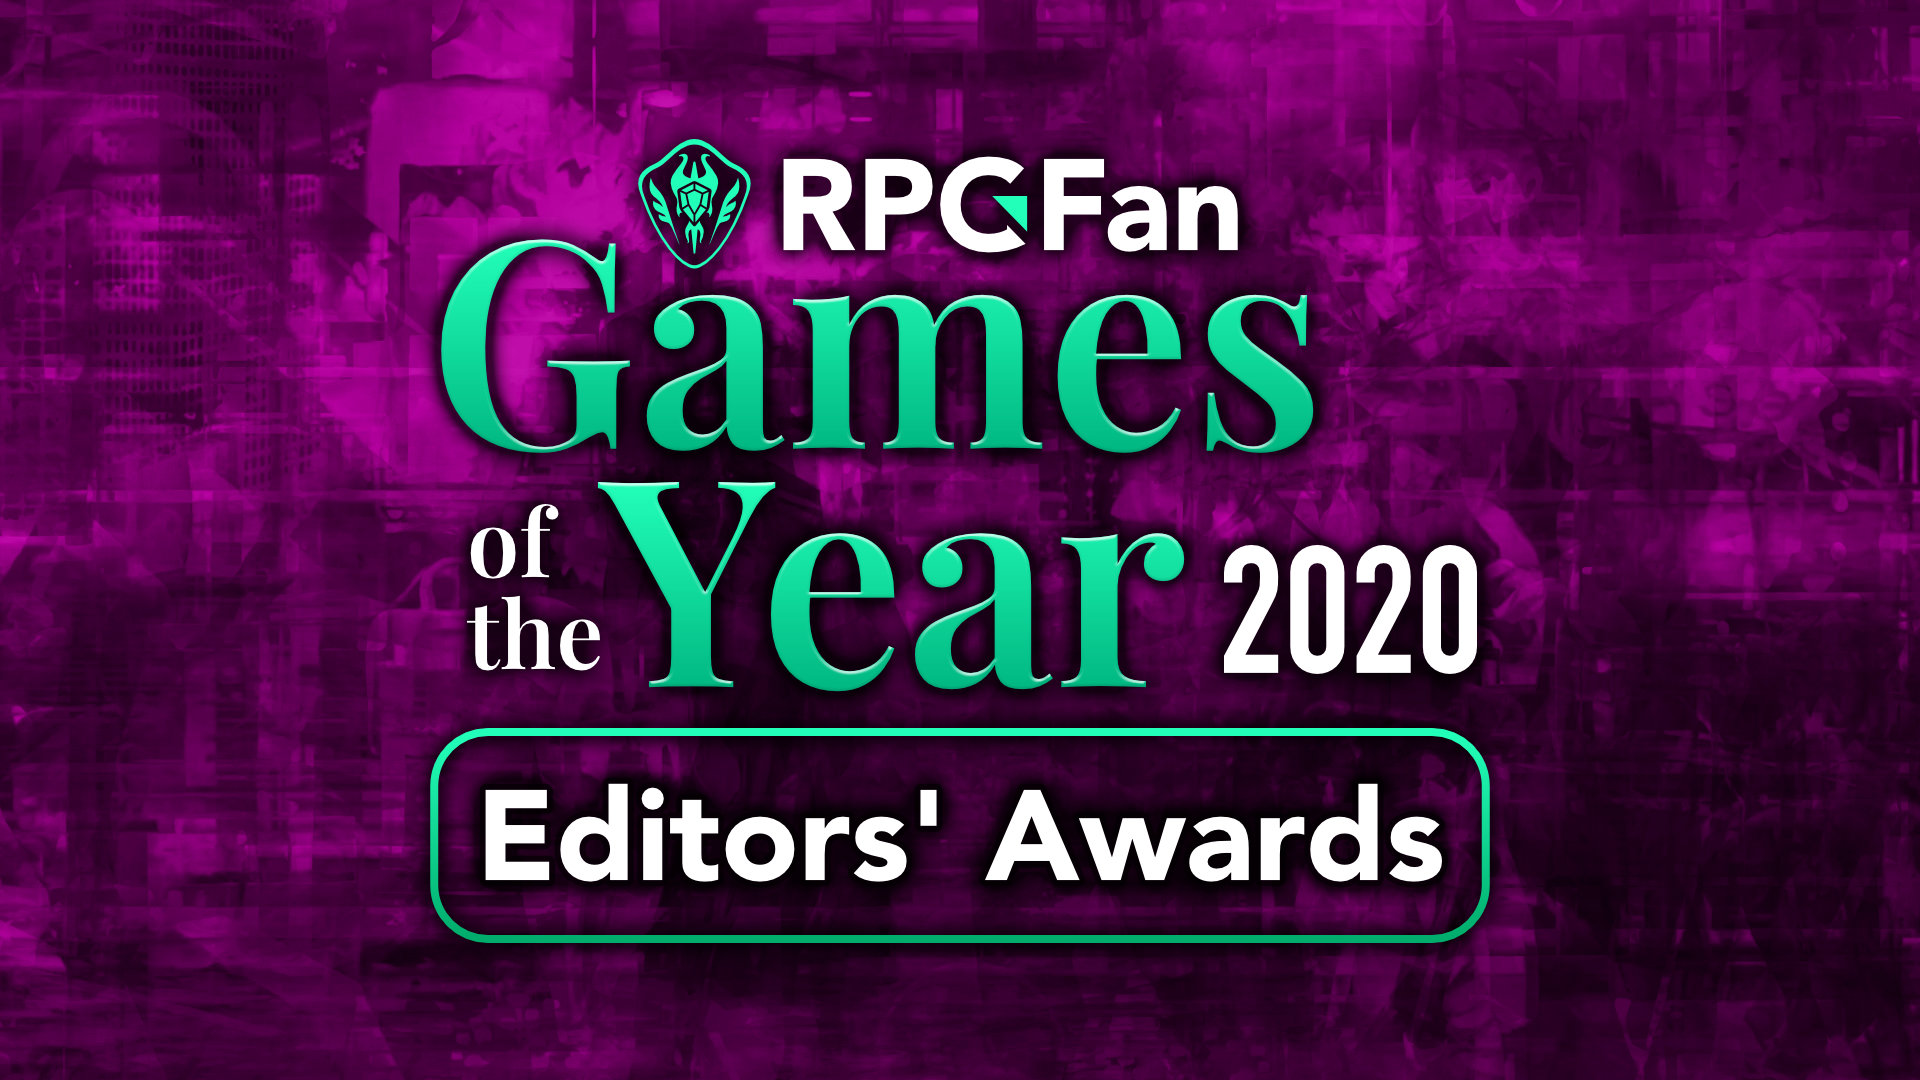 RPGFan Games of the Year 2020 Editors' Awards